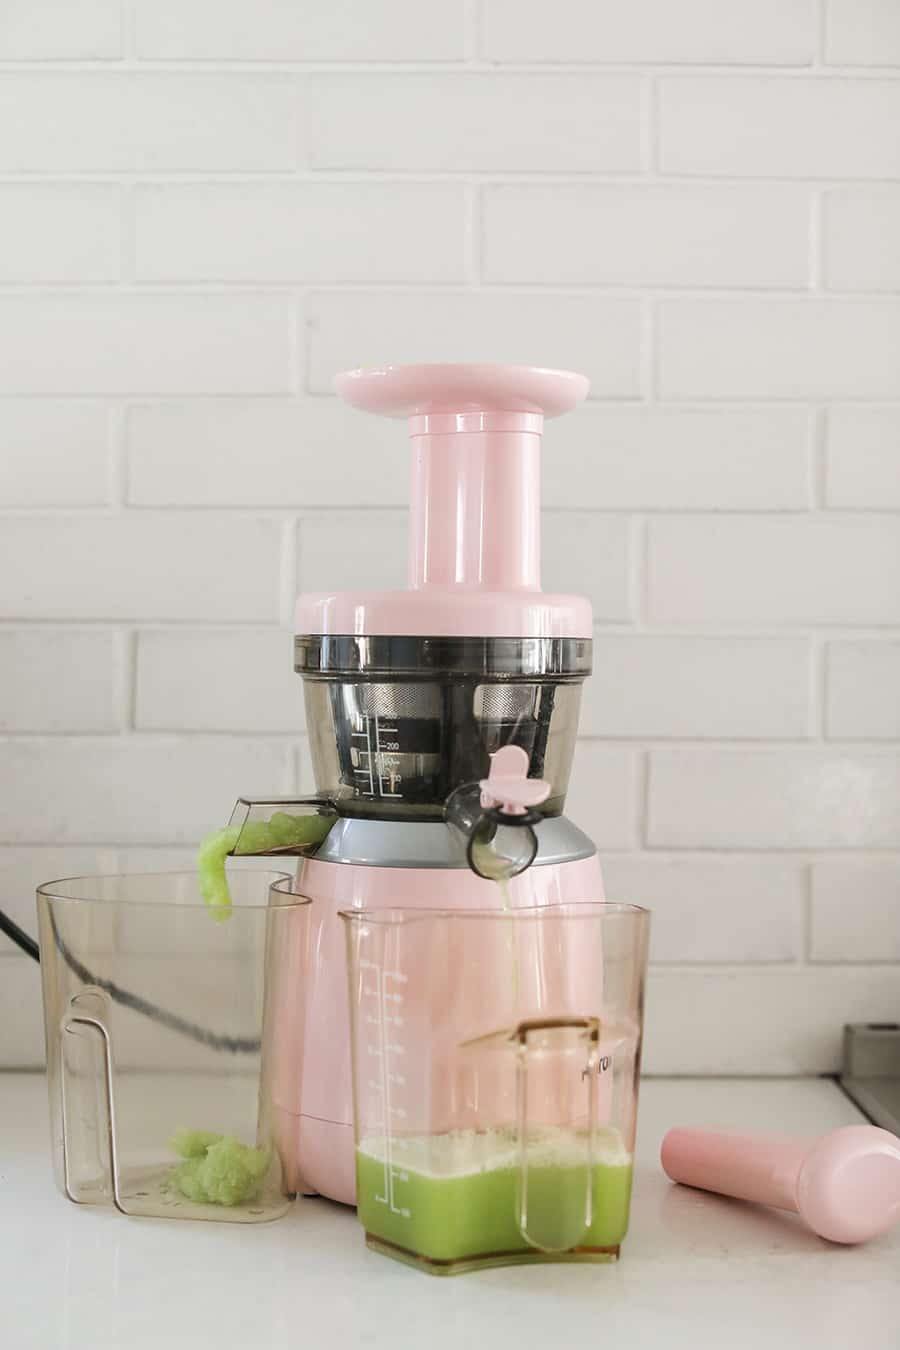 Making juice in a pink juicer.